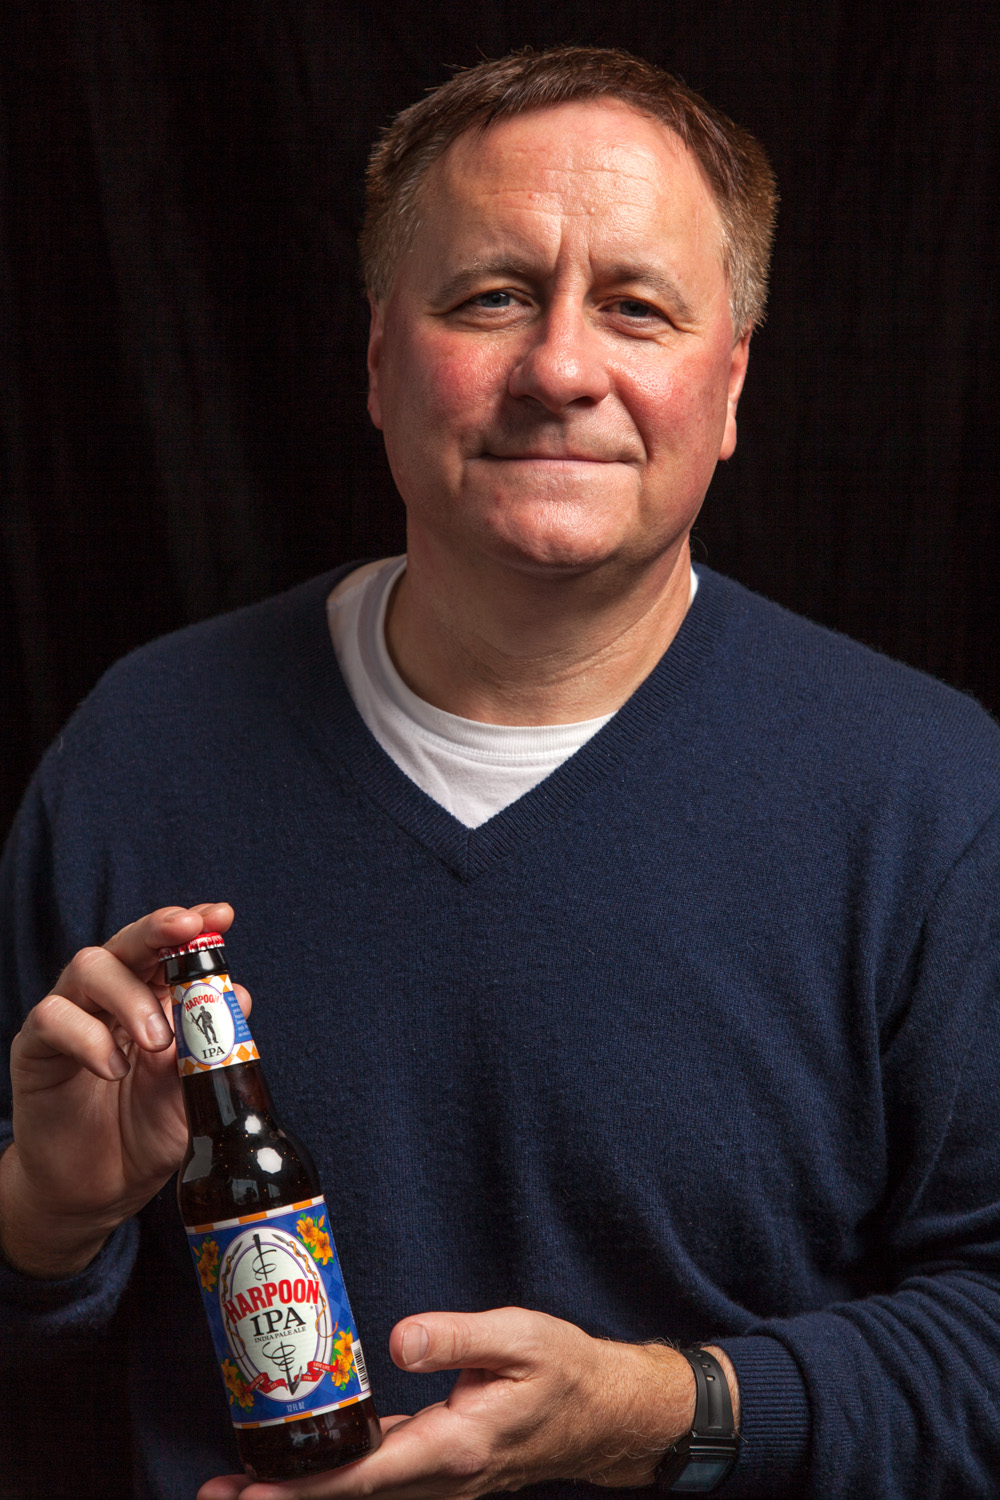 Rich Doyle, Founding Partner of Harpoon Brewery Boston, MA Established in 1987